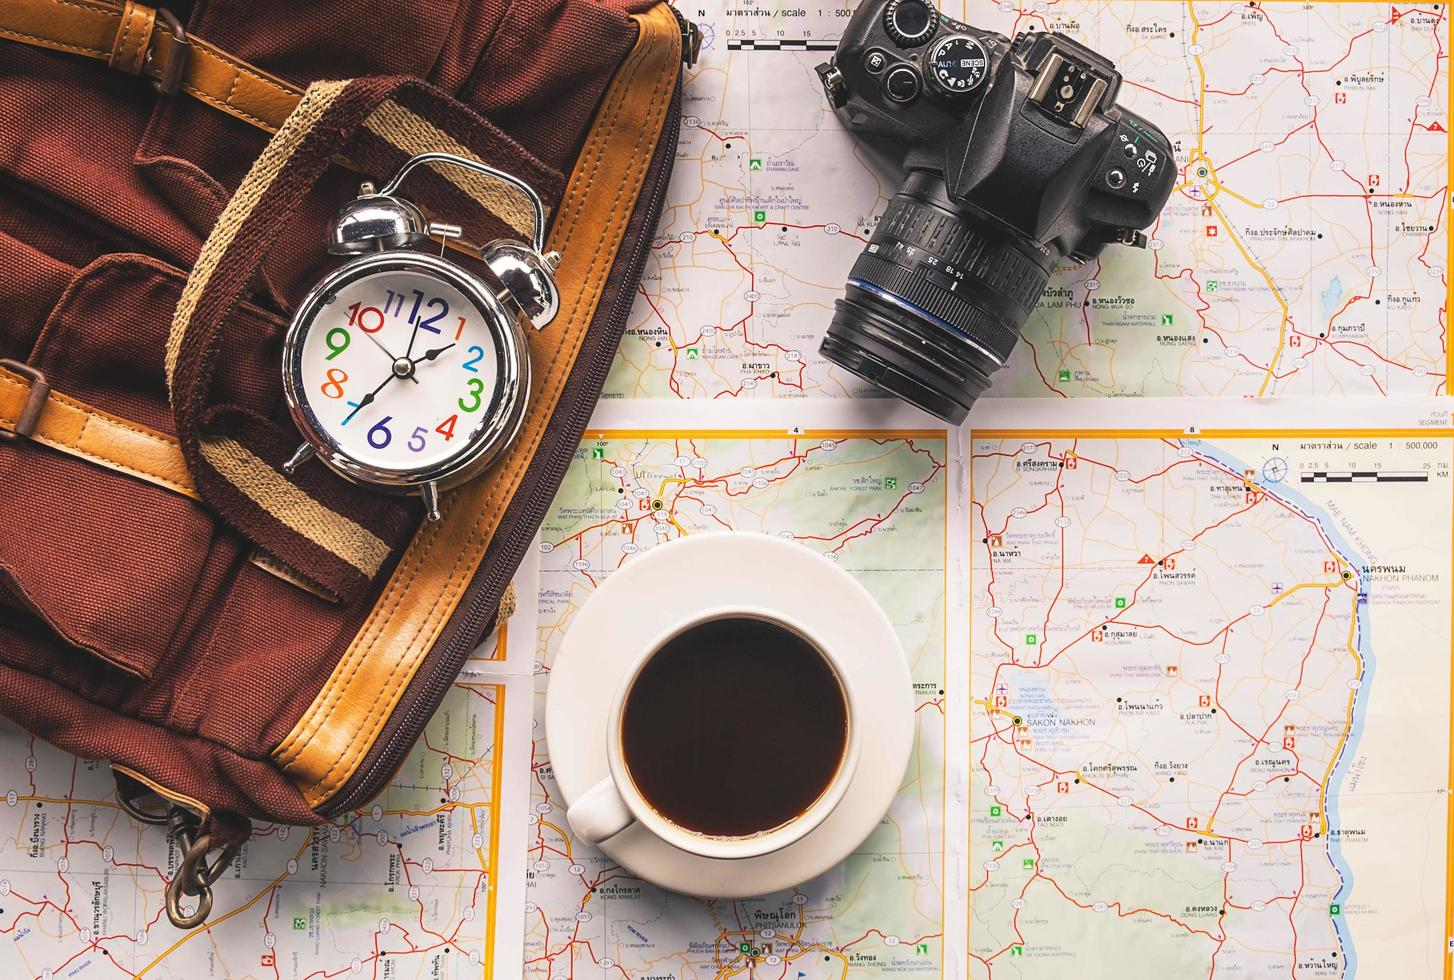 Top view of travel planning photo